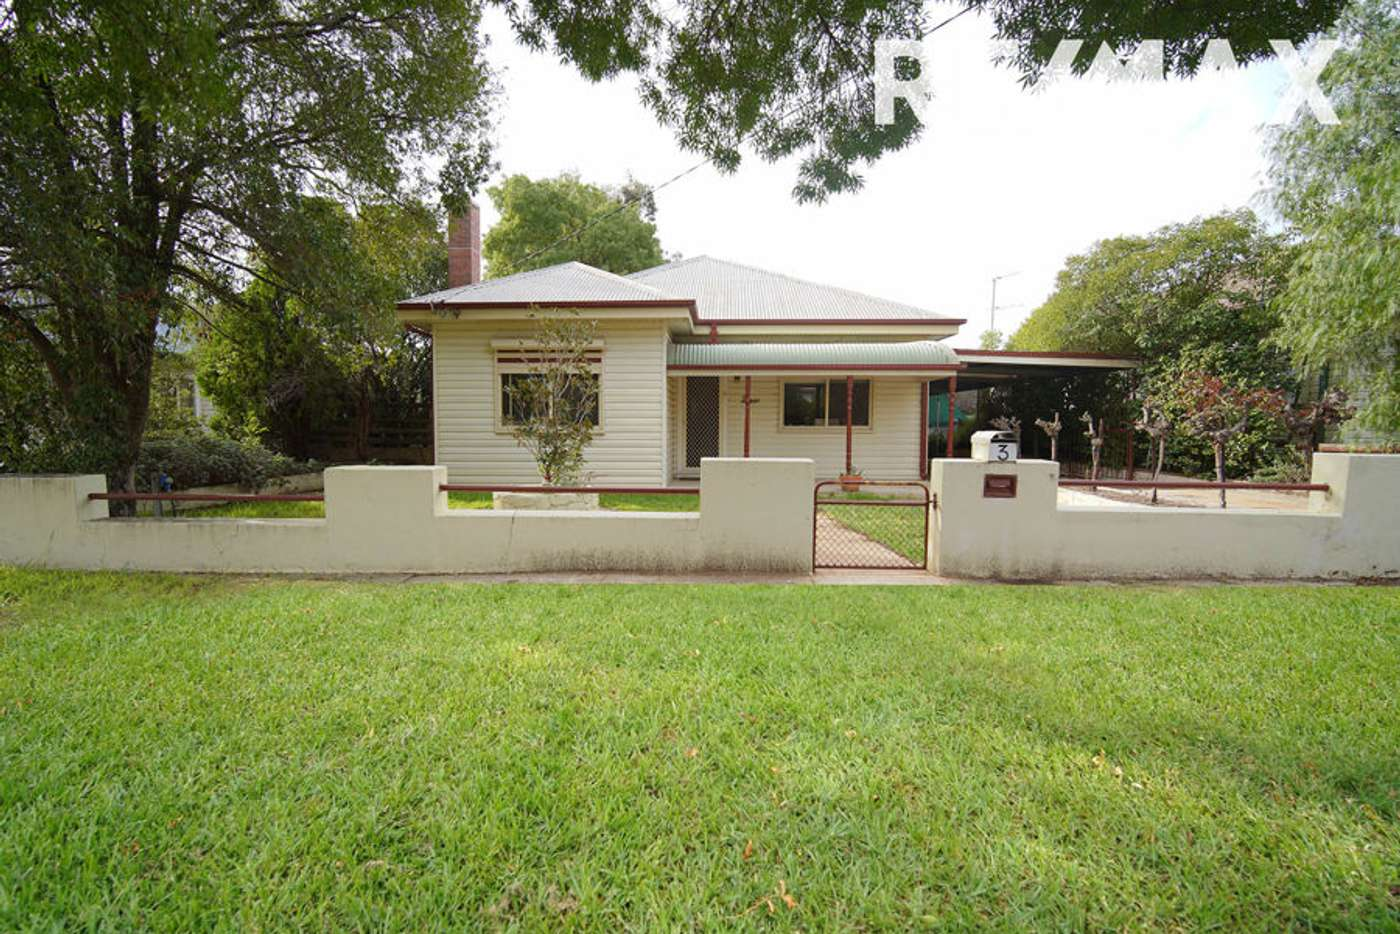 Main view of Homely house listing, 3 Sullivan Avenue, Wagga Wagga NSW 2650